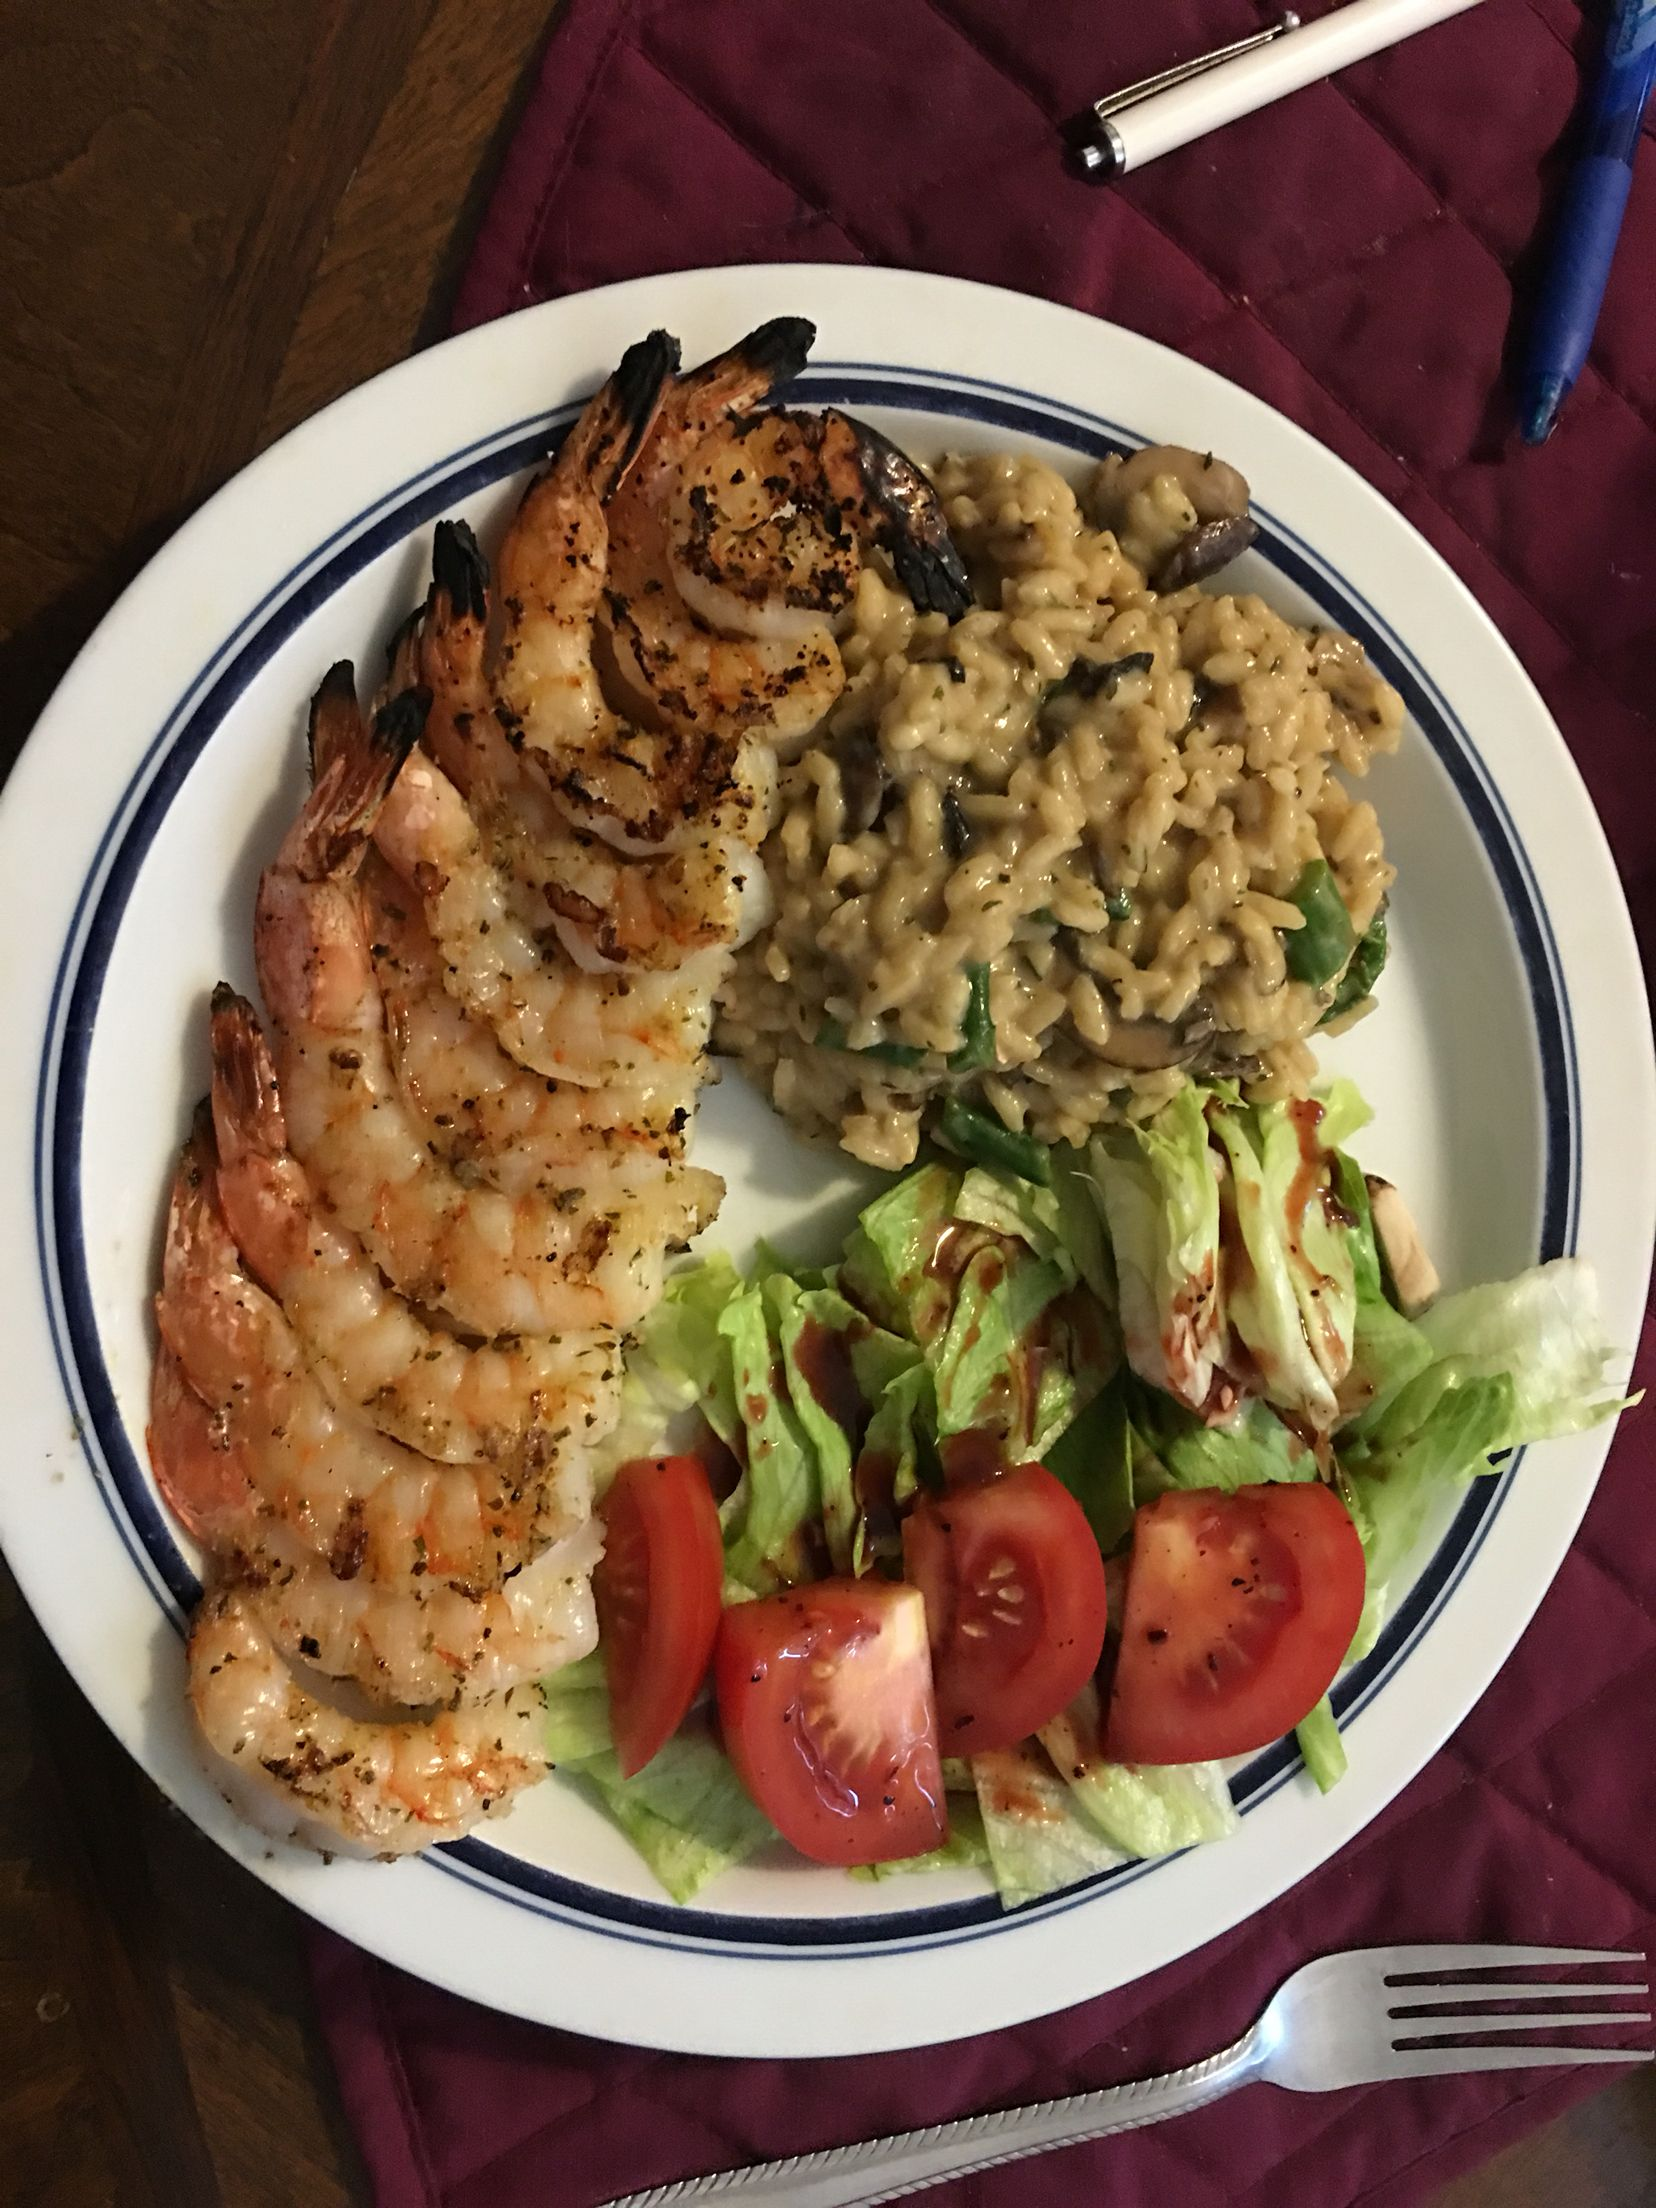 Grilled garlic shrimp, asparagus and mushroom risotto and a small side salad with strawberry vinaigrette.